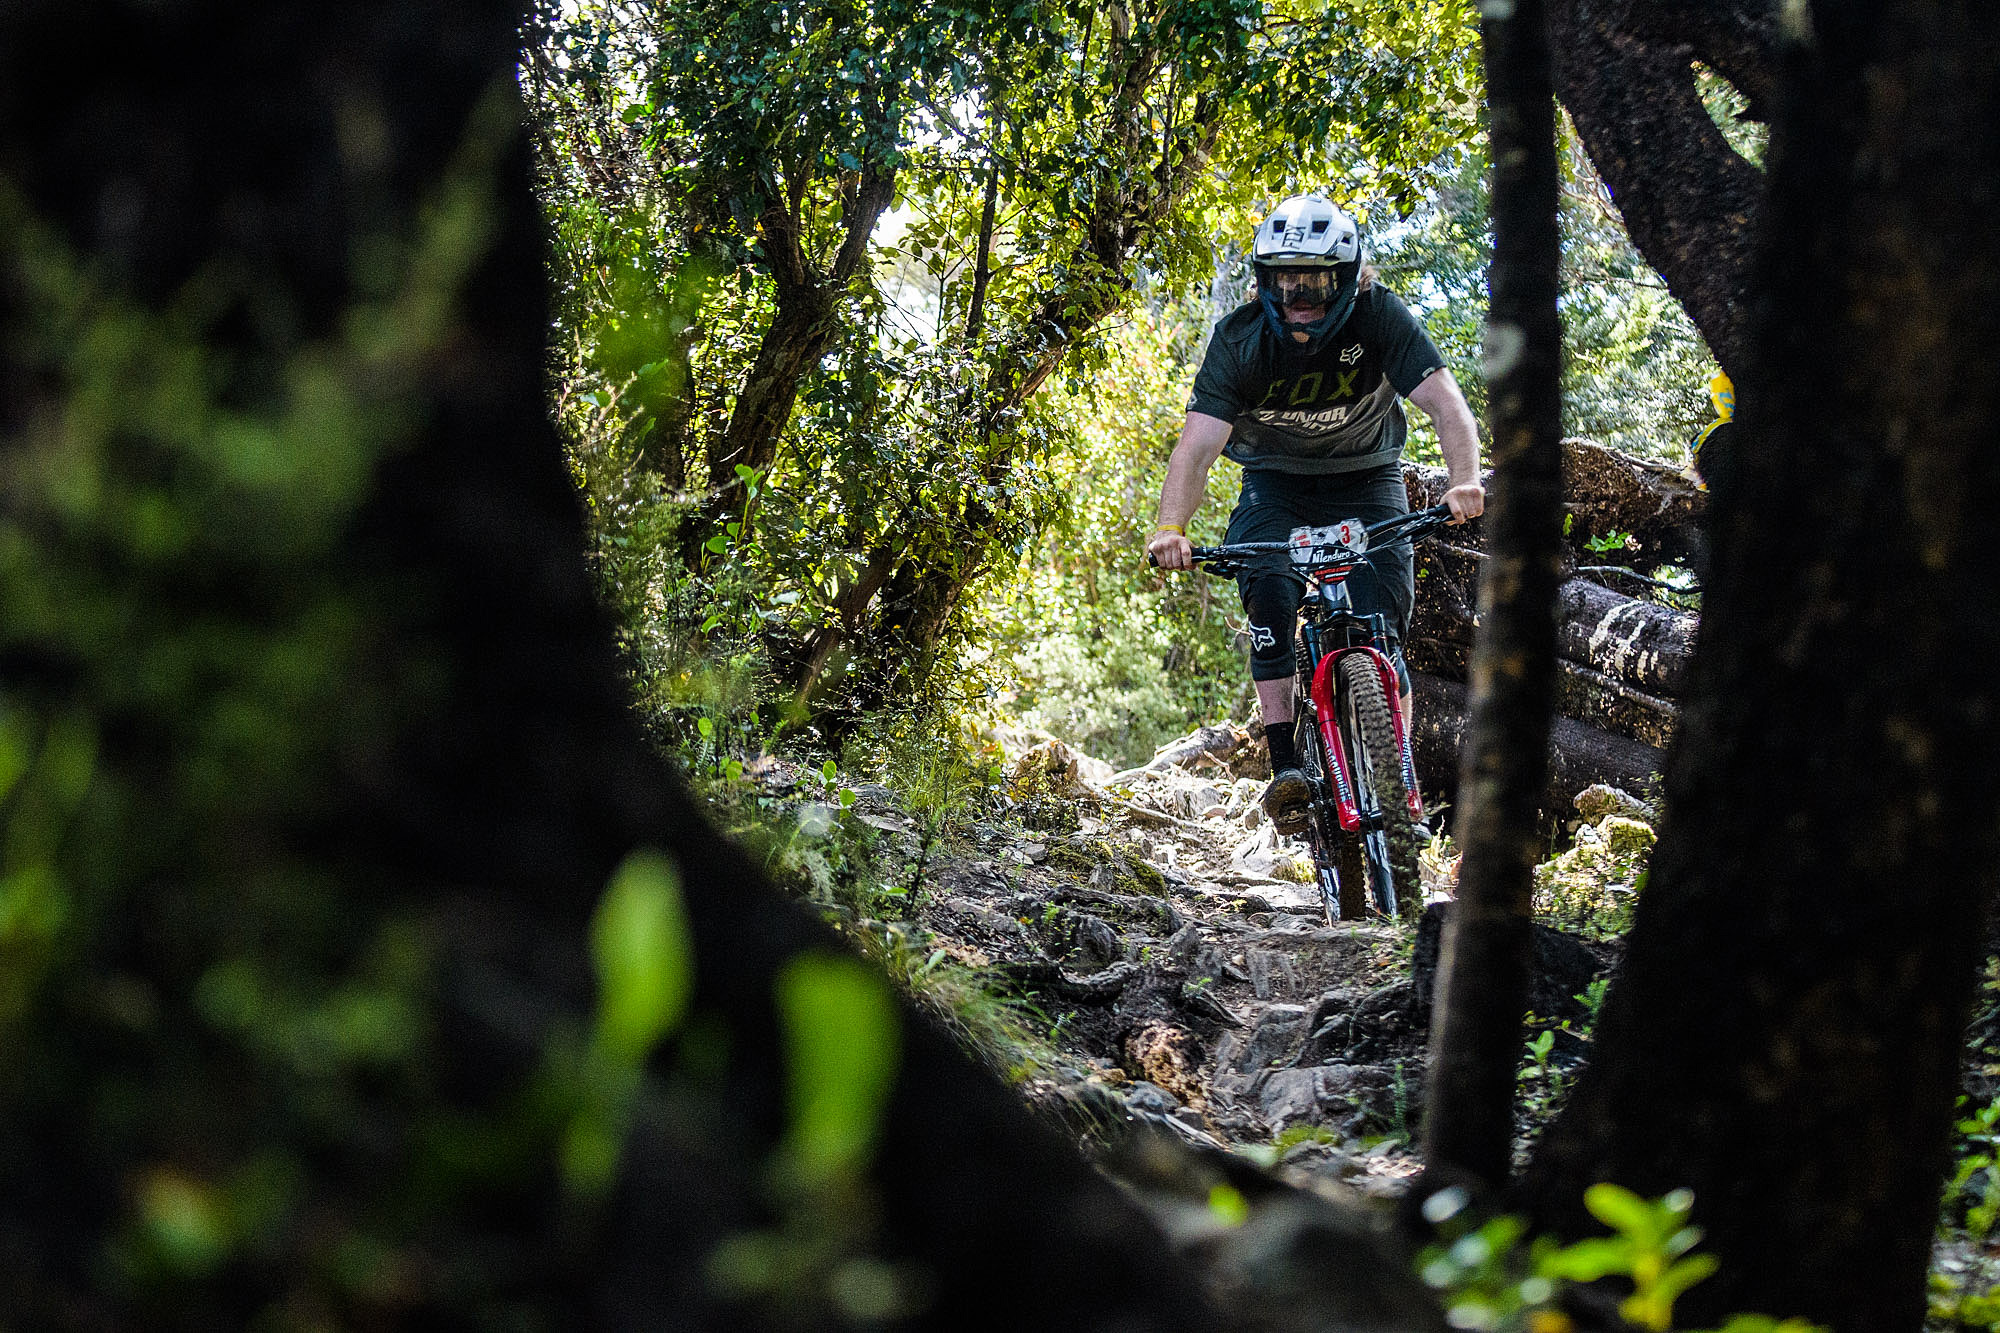 Keegan Wright blazed his way through todays stages to take a 7 second lead.